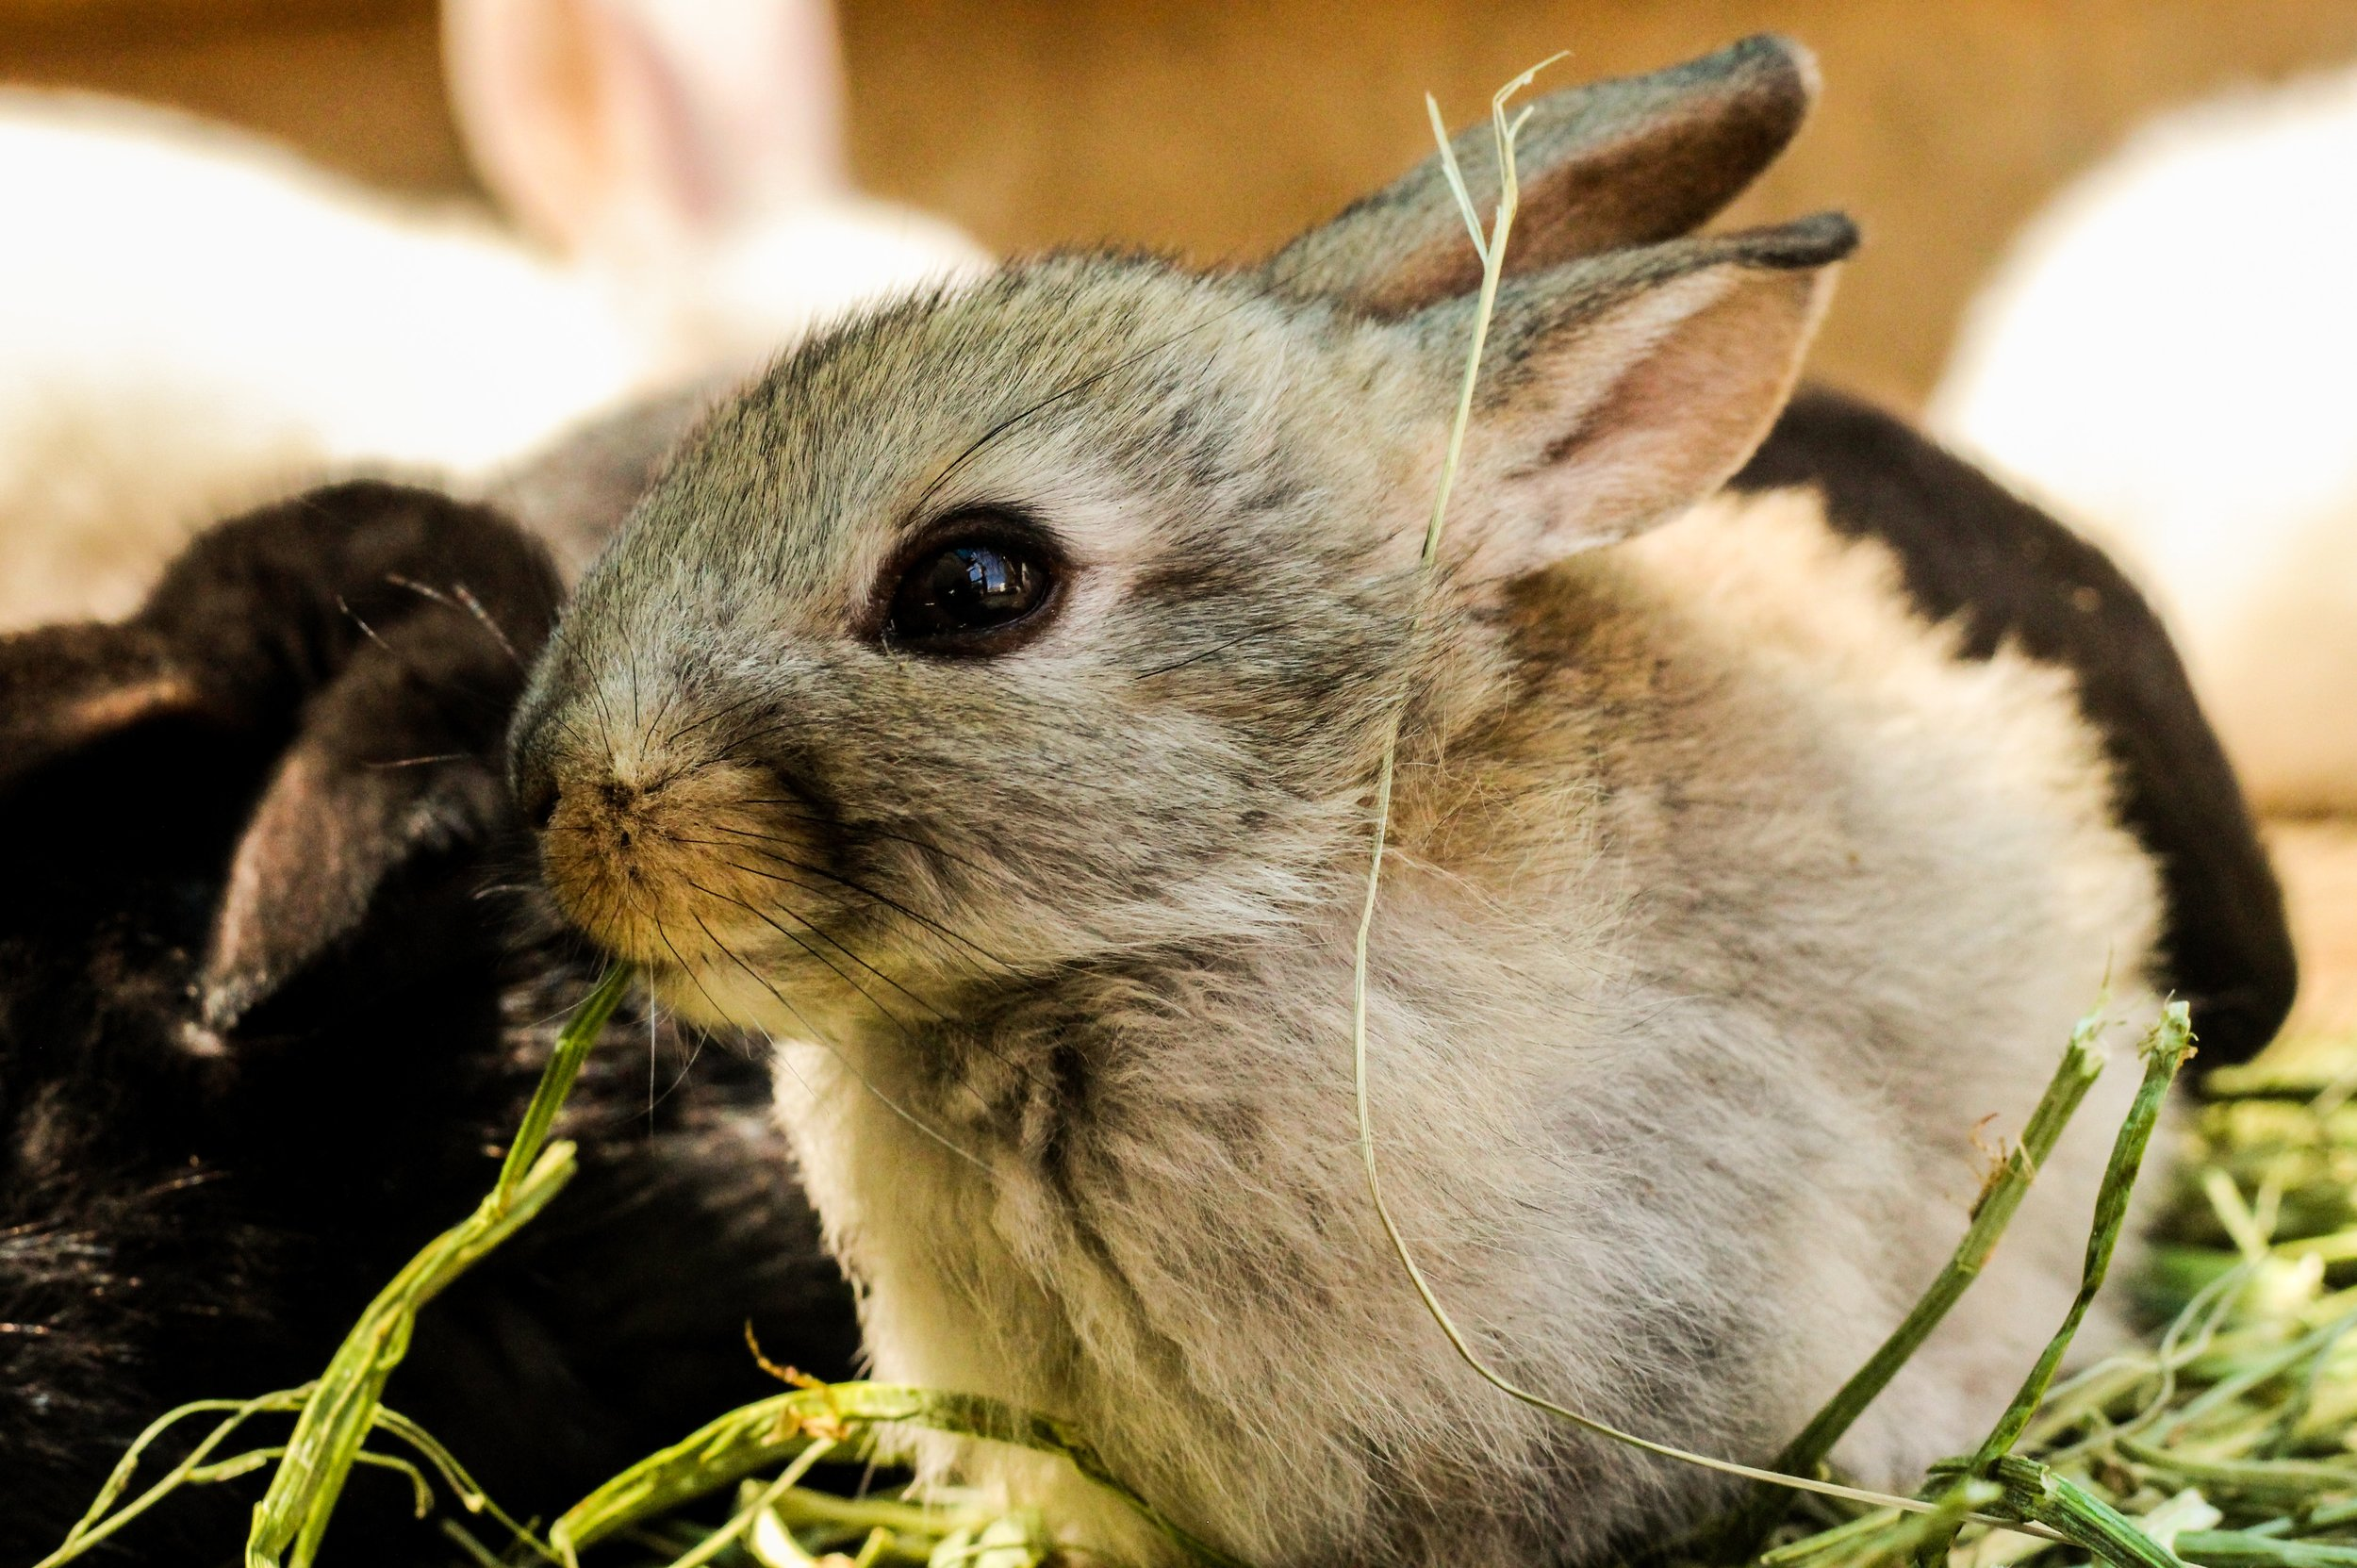 Ailments suffered by house bunnies